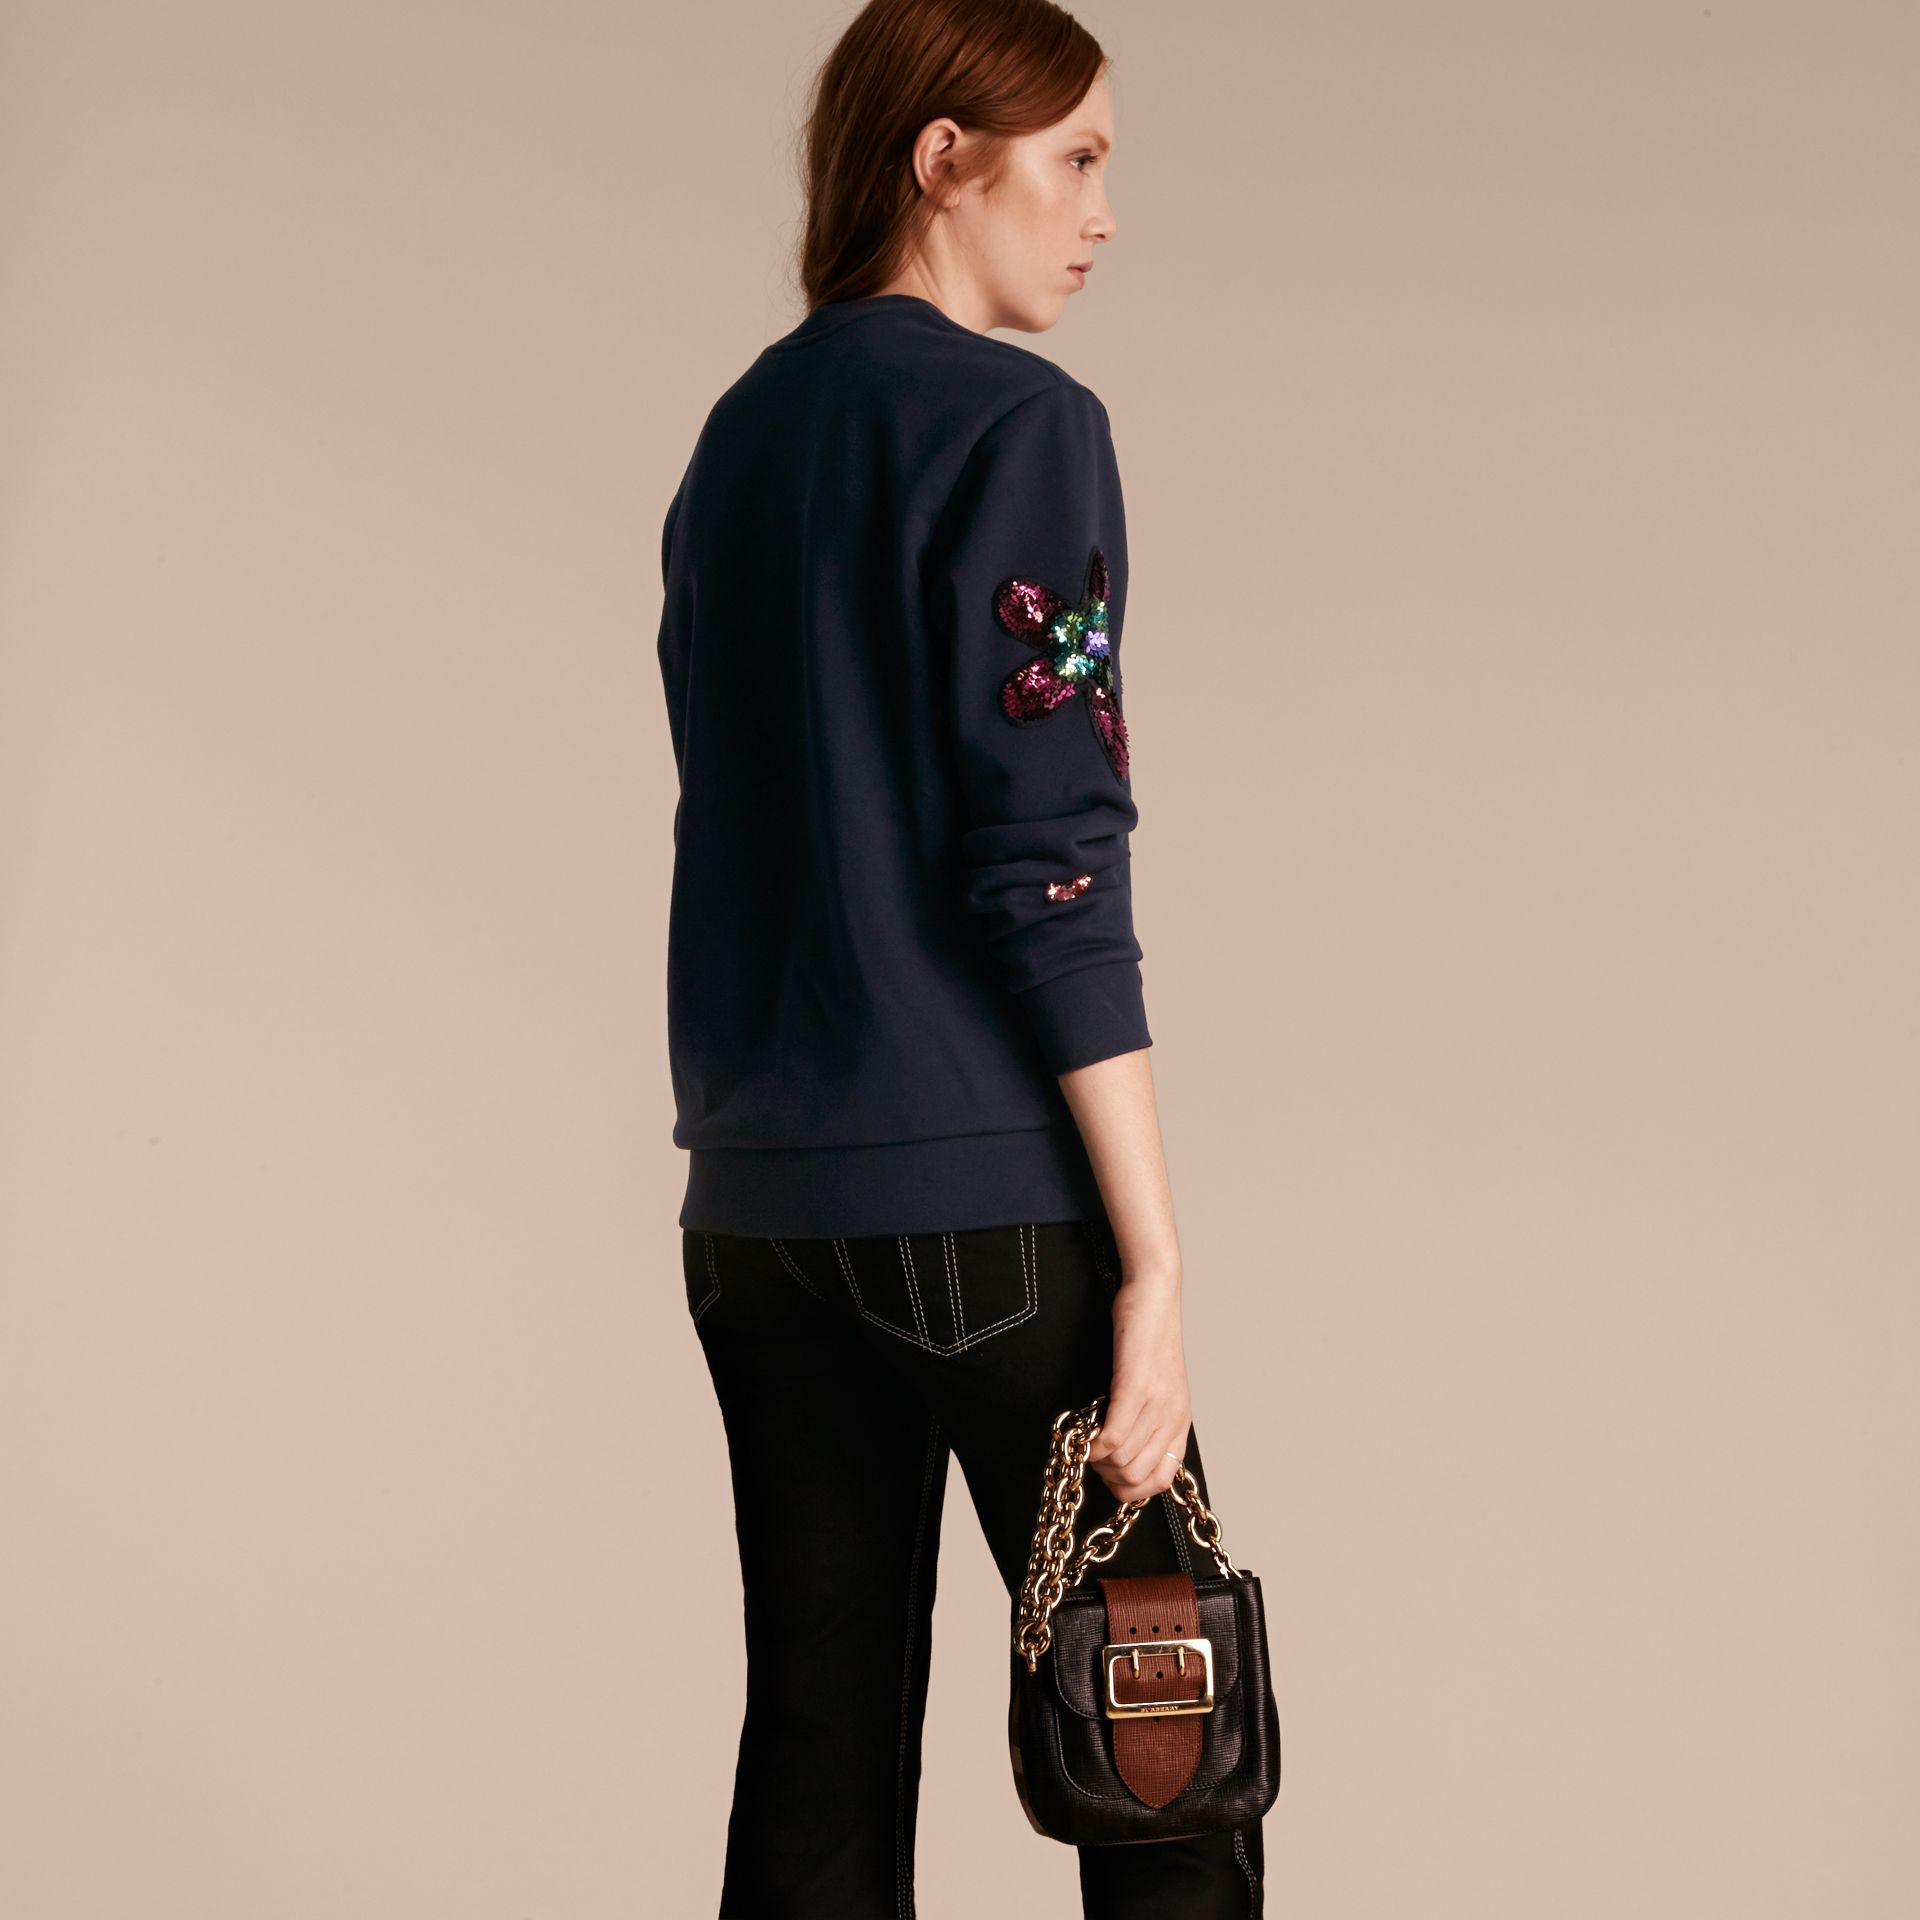 Navy Sequin Floral Appliqué Cotton Sweatshirt Navy - gallery image 3